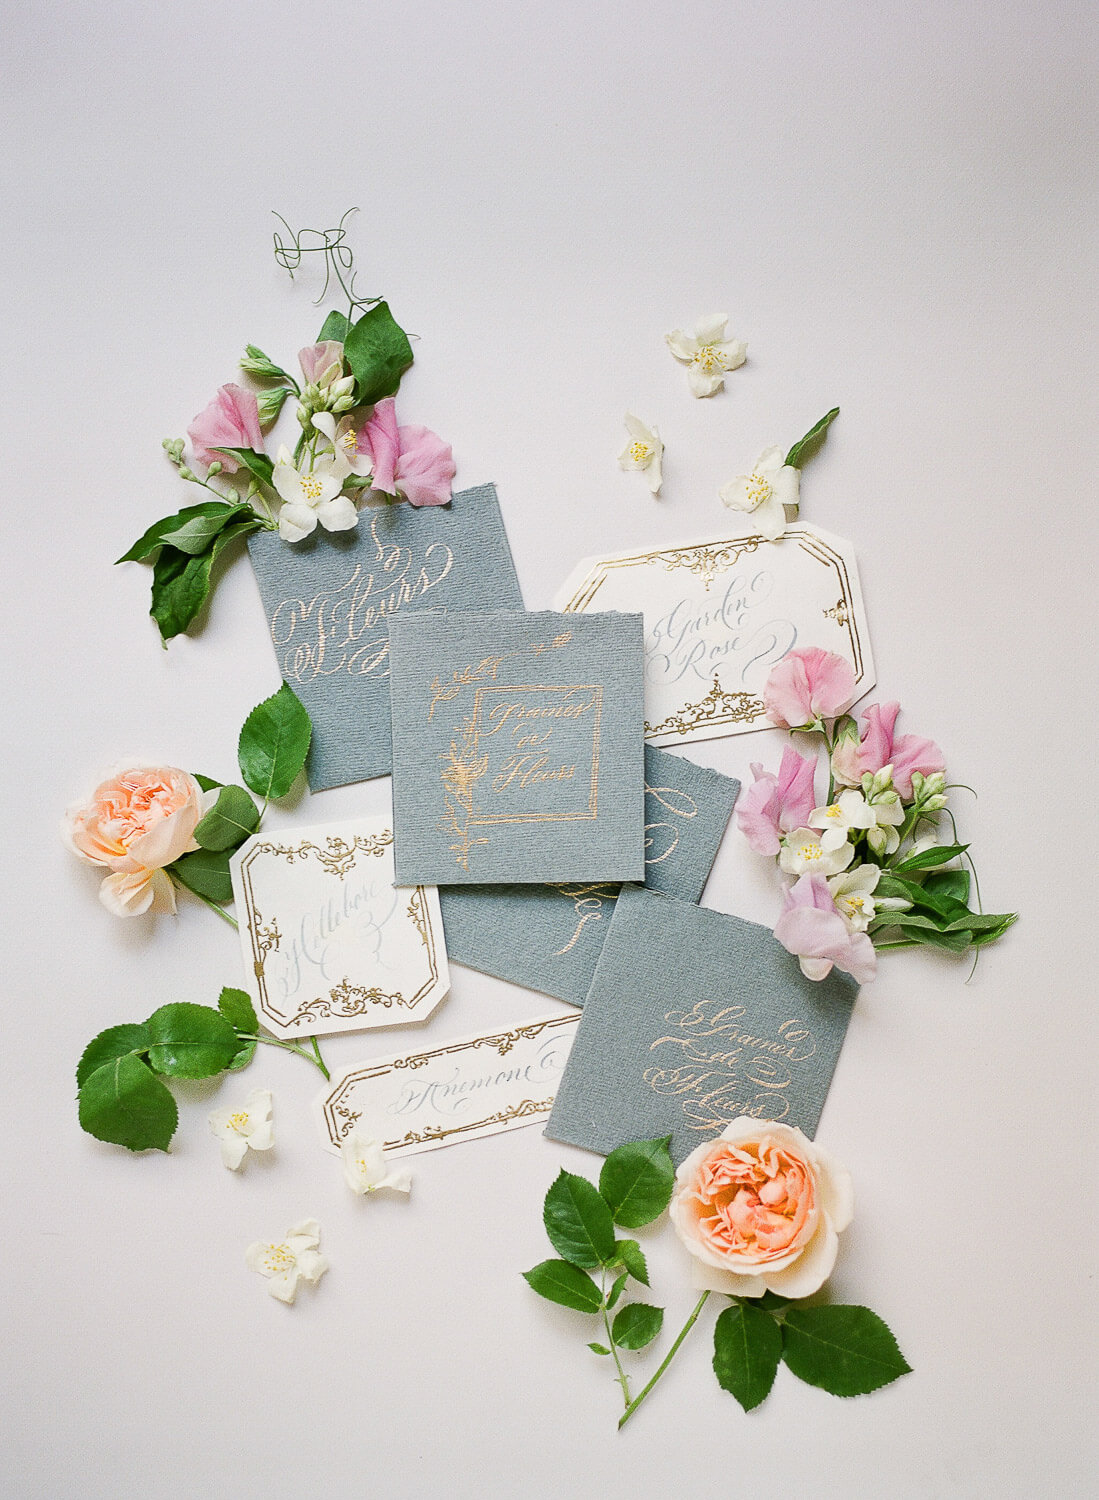 wedding flat lay with calligraphy invitations and floral details by Portugal Wedding Photographer